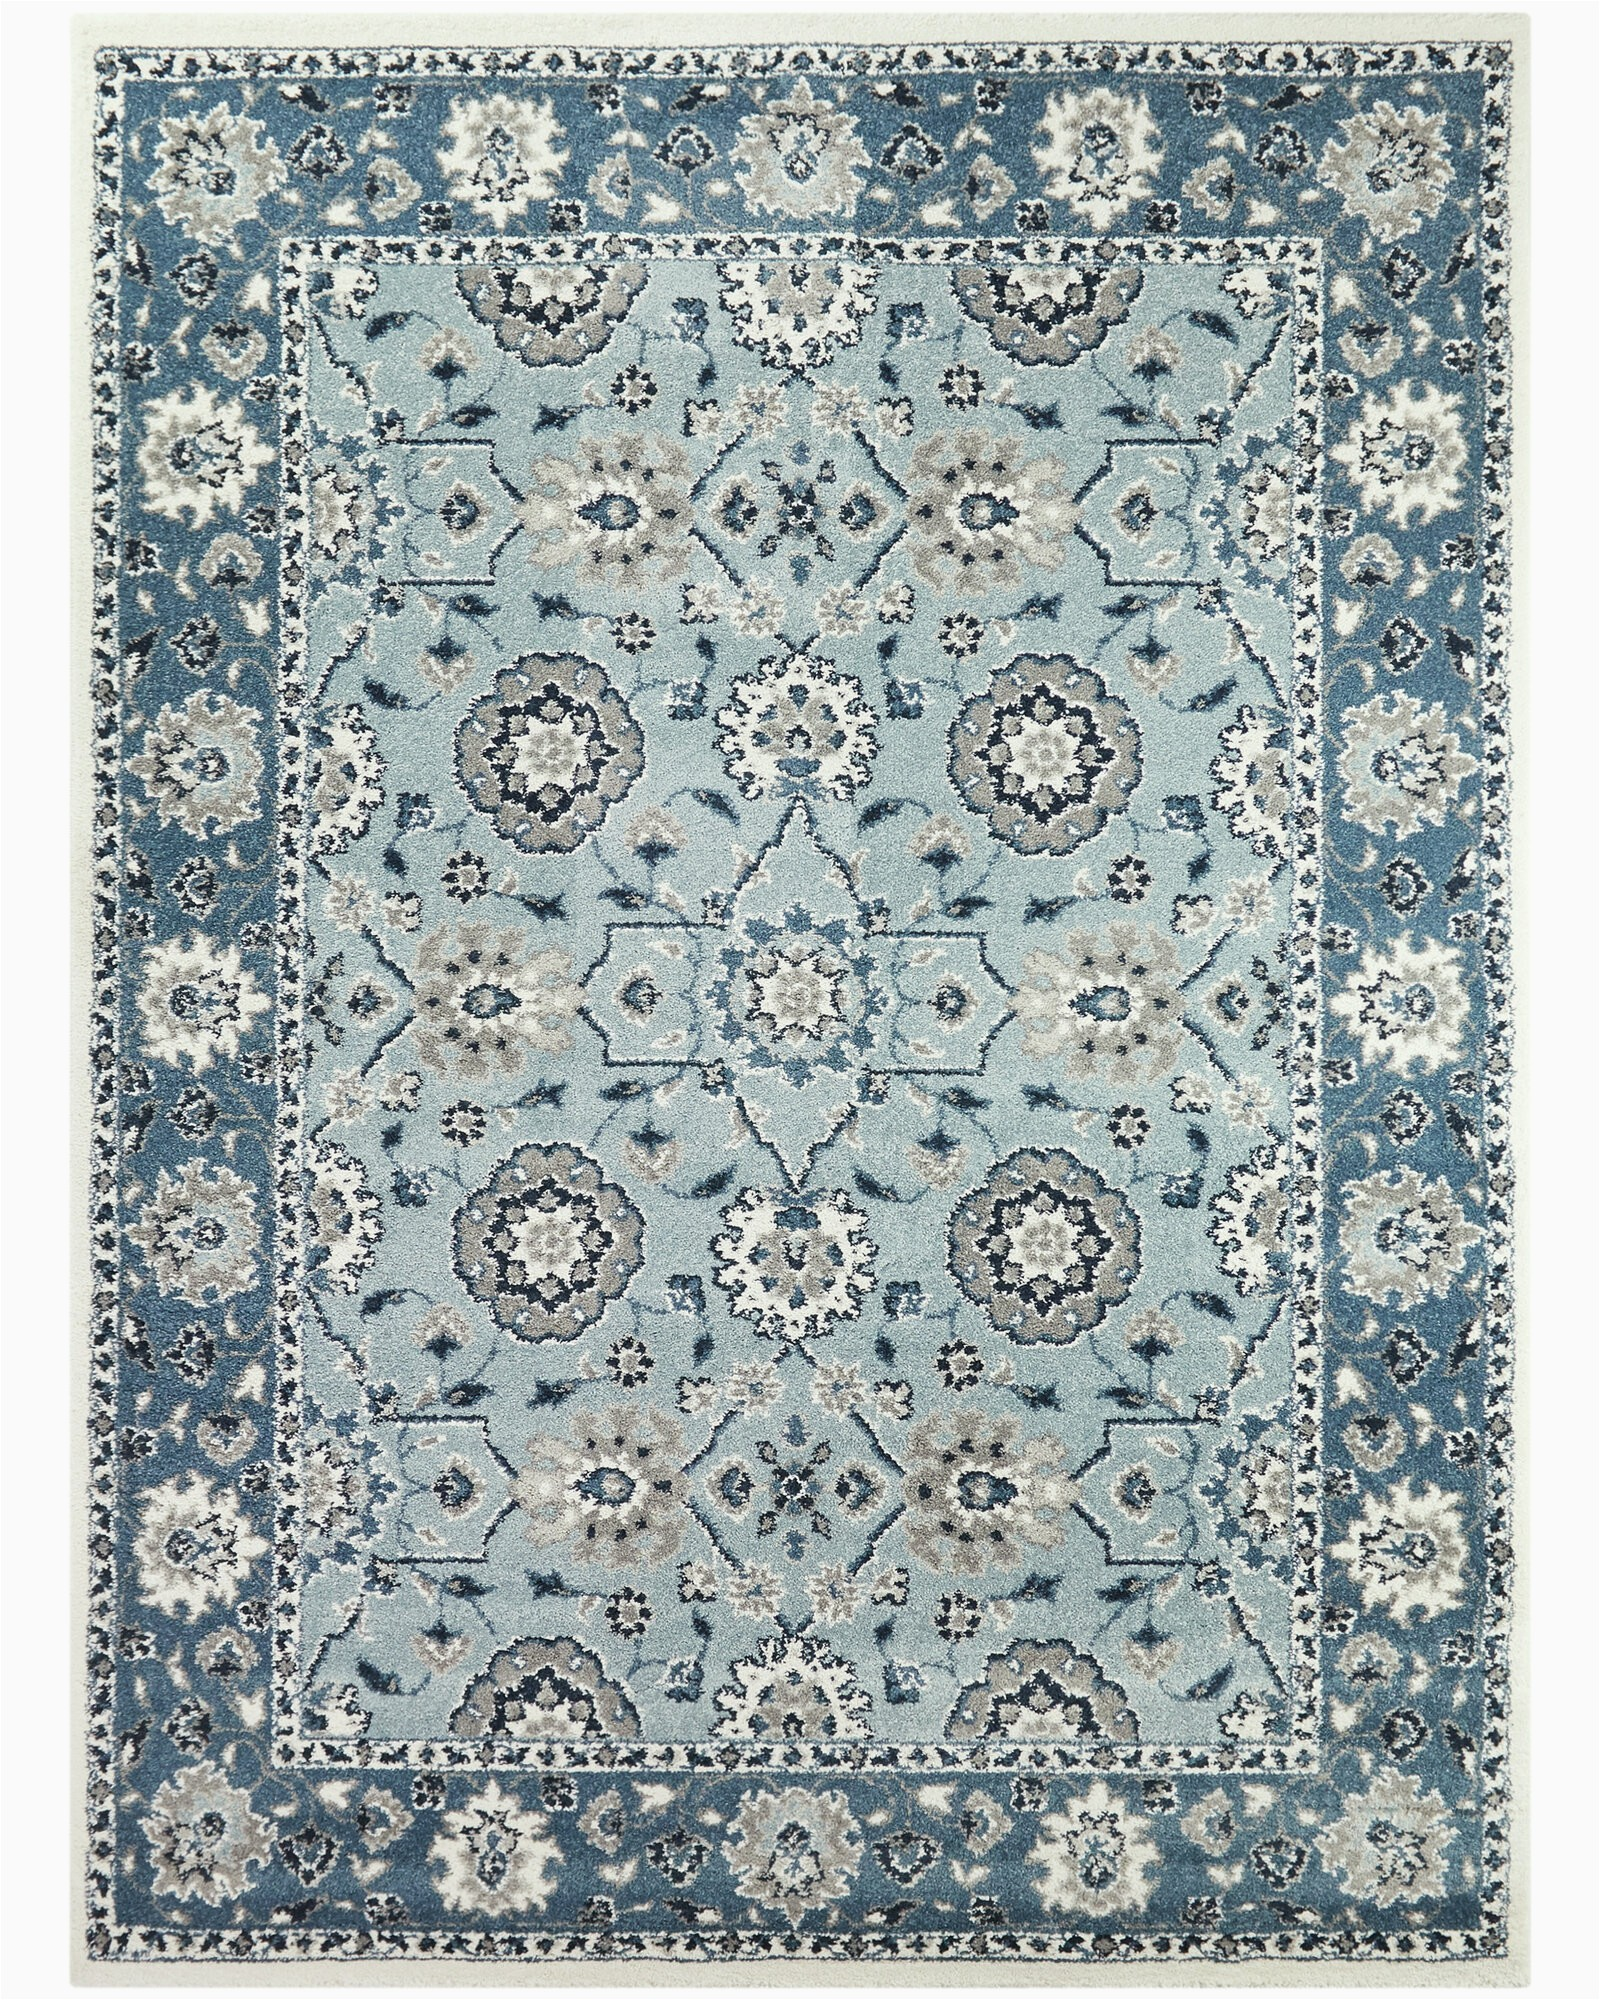 alresford oriental tealblue area rug